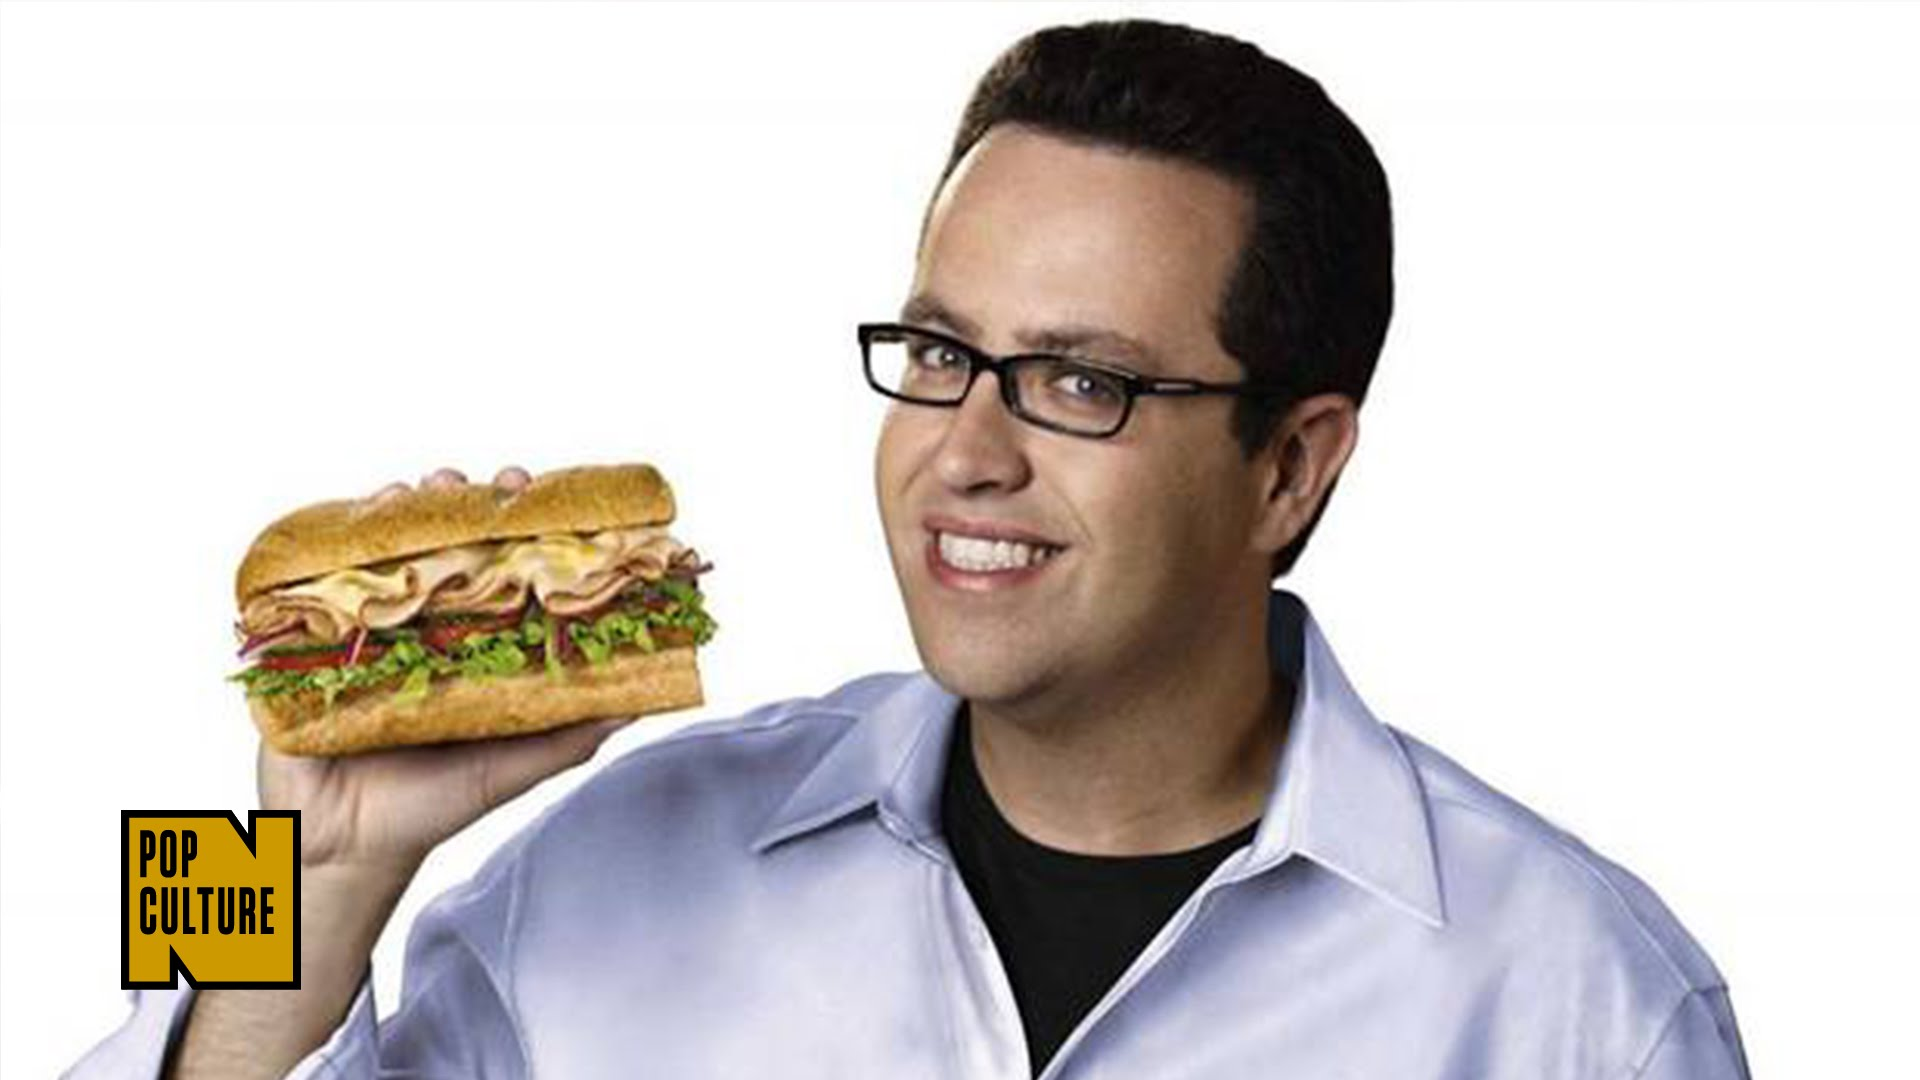 Jared Fogle Exchanged Lewd Text Messages with a former Subway Franchisee, FBI Investigates